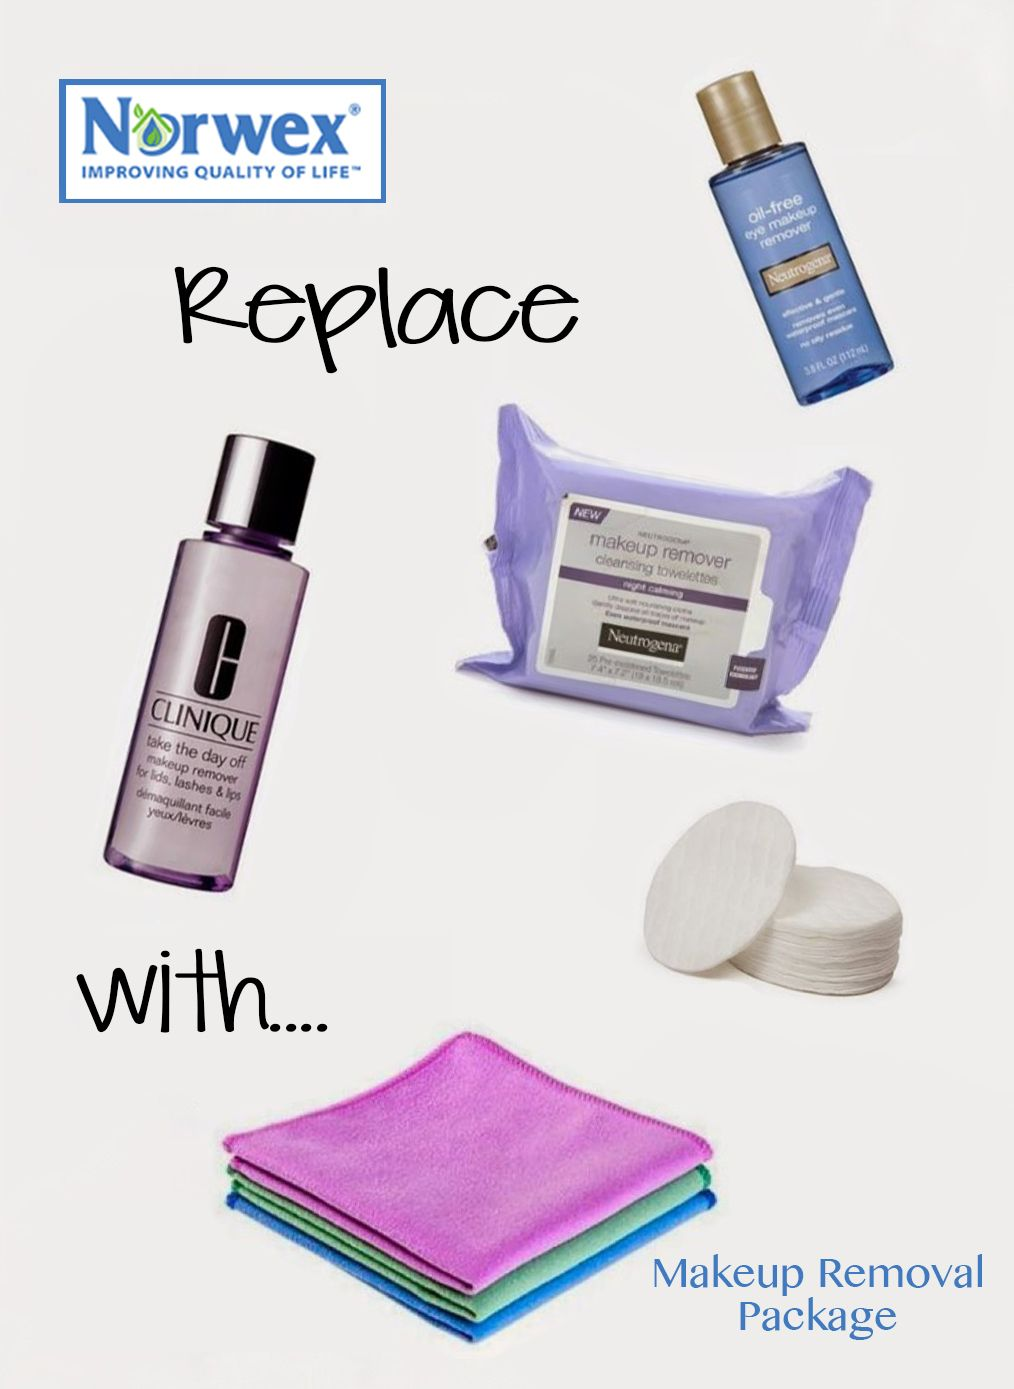 Makeup Removal Important Skin Care Routine: How Do You Remove Your Makeup?? I Use Water And My Norwex